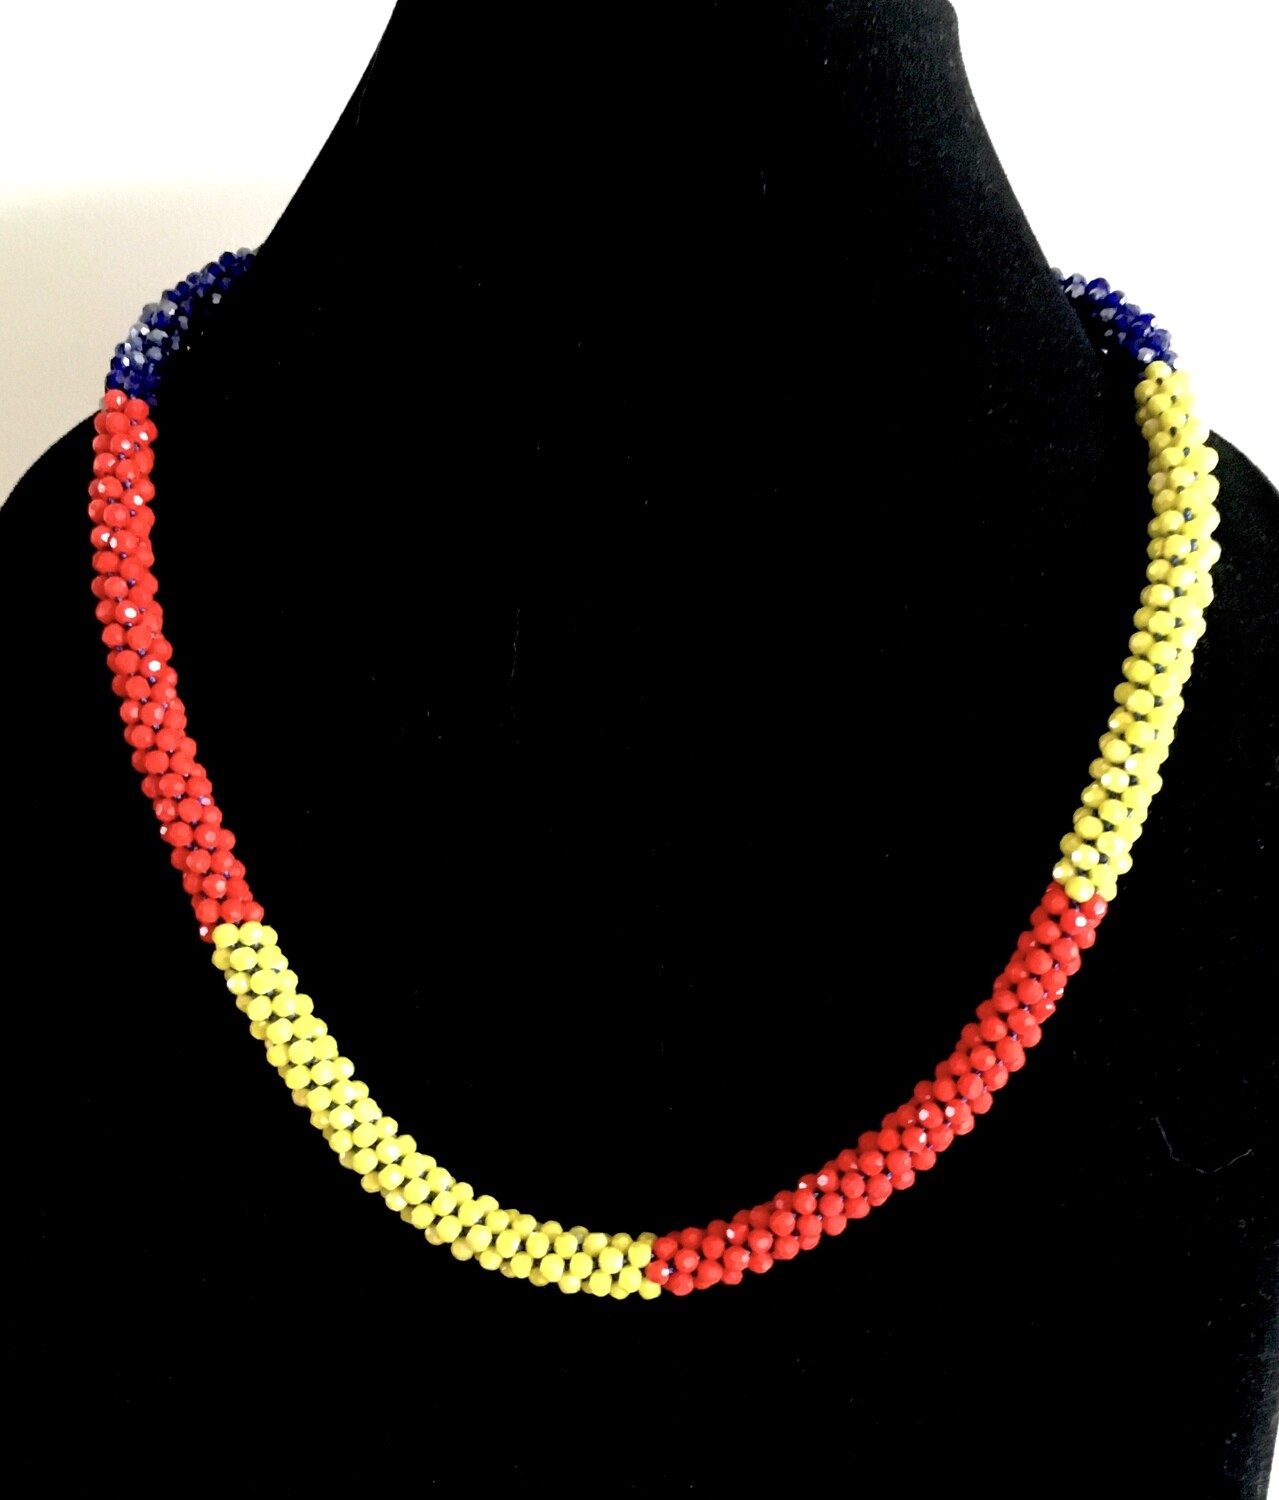 Blue,yellow and red Kumihumo necklace